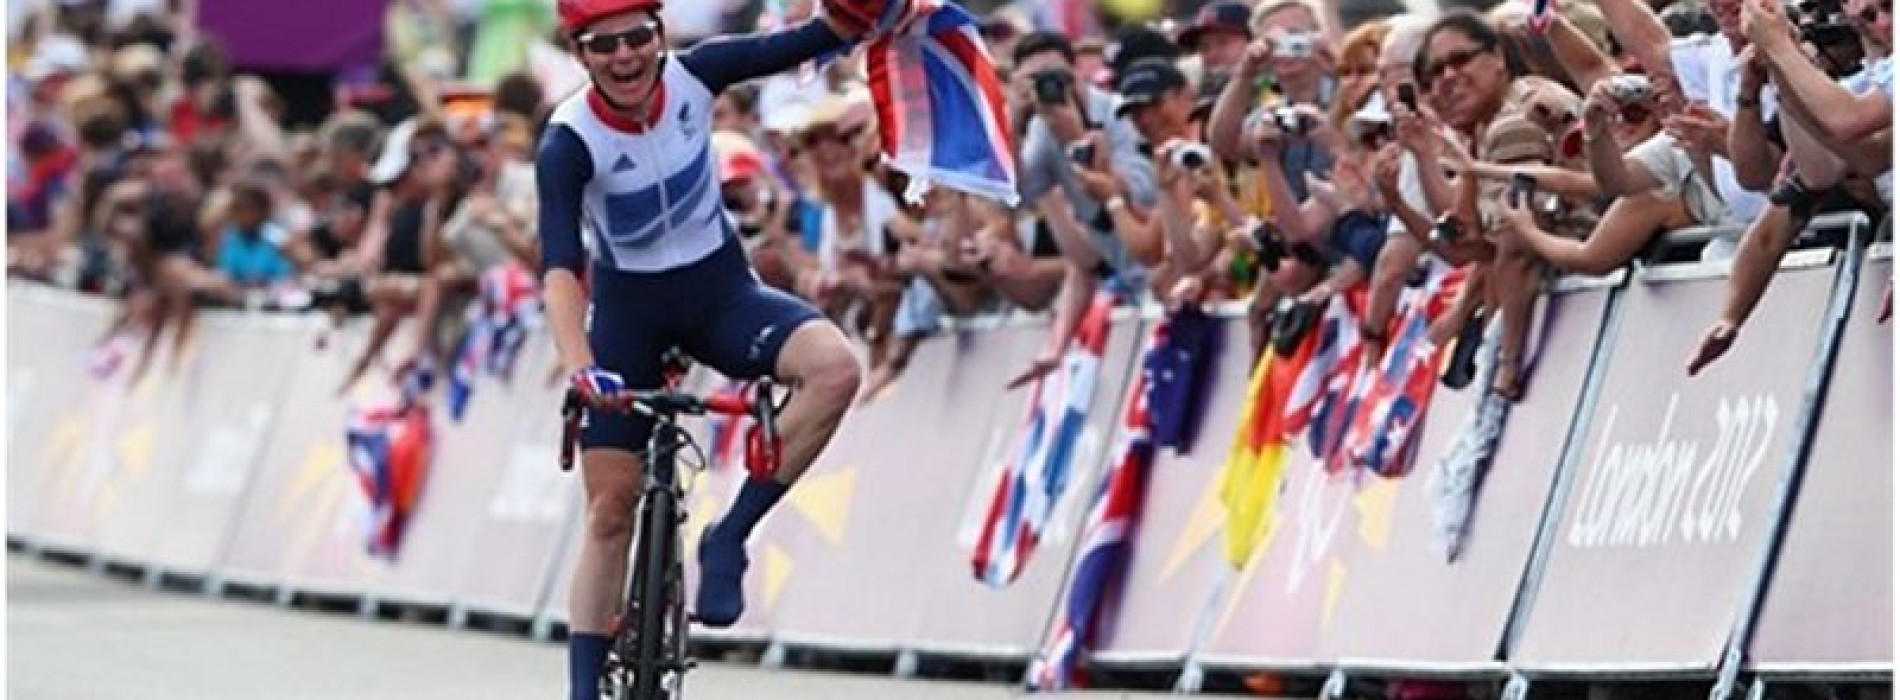 Paralympic Games 2012: day 8